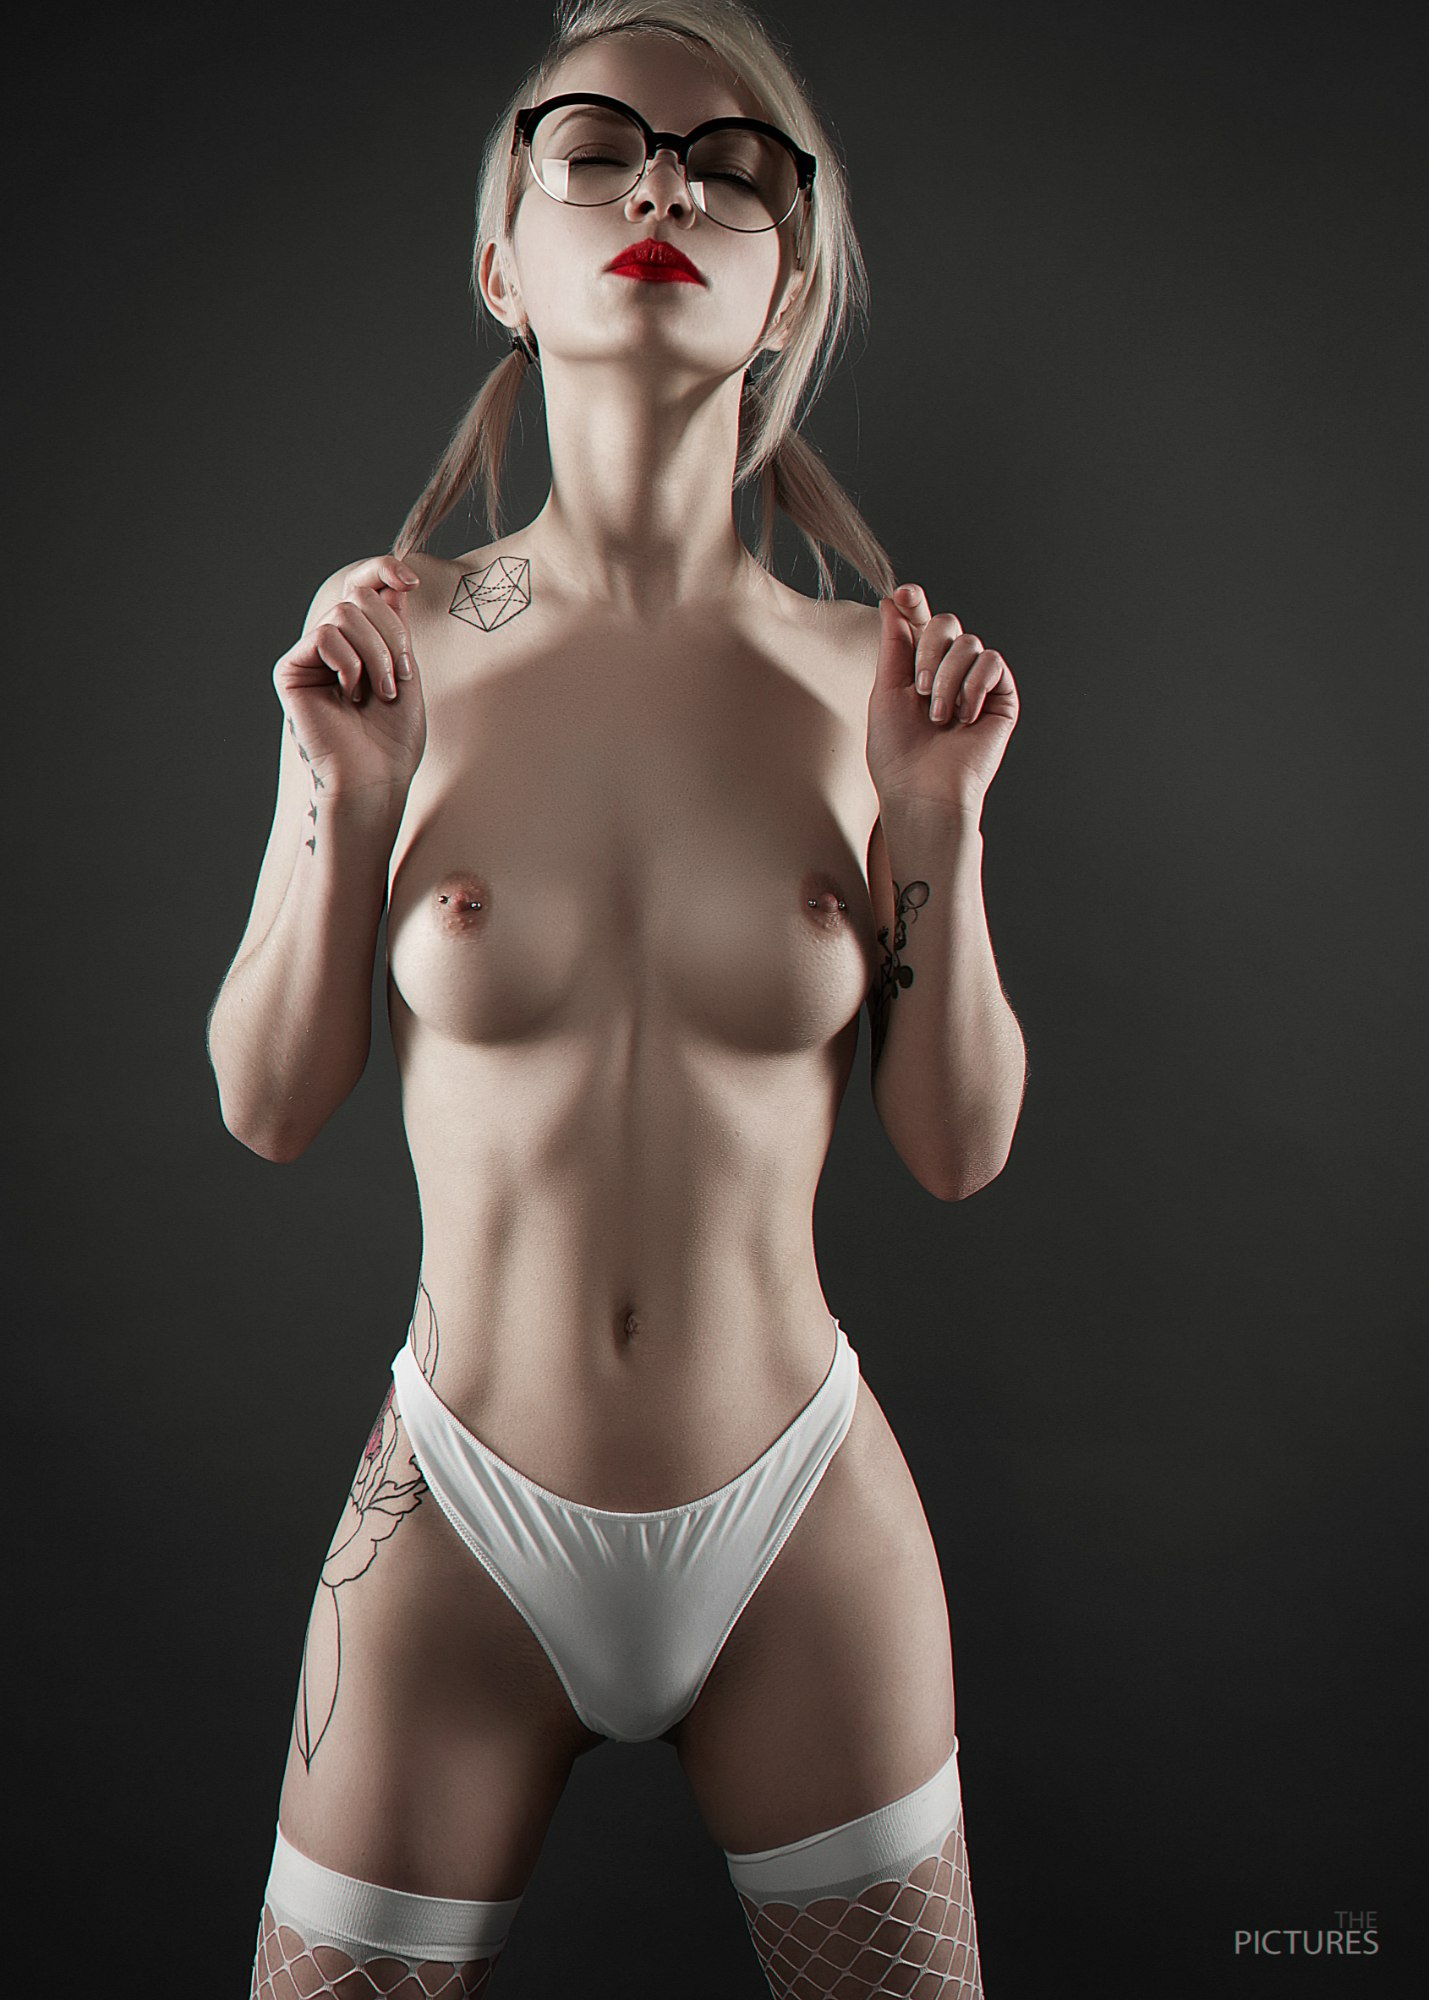 cyber girl of the month bethanie badertscher nude Xx 1374976 main - Anonymous image hosting#whois